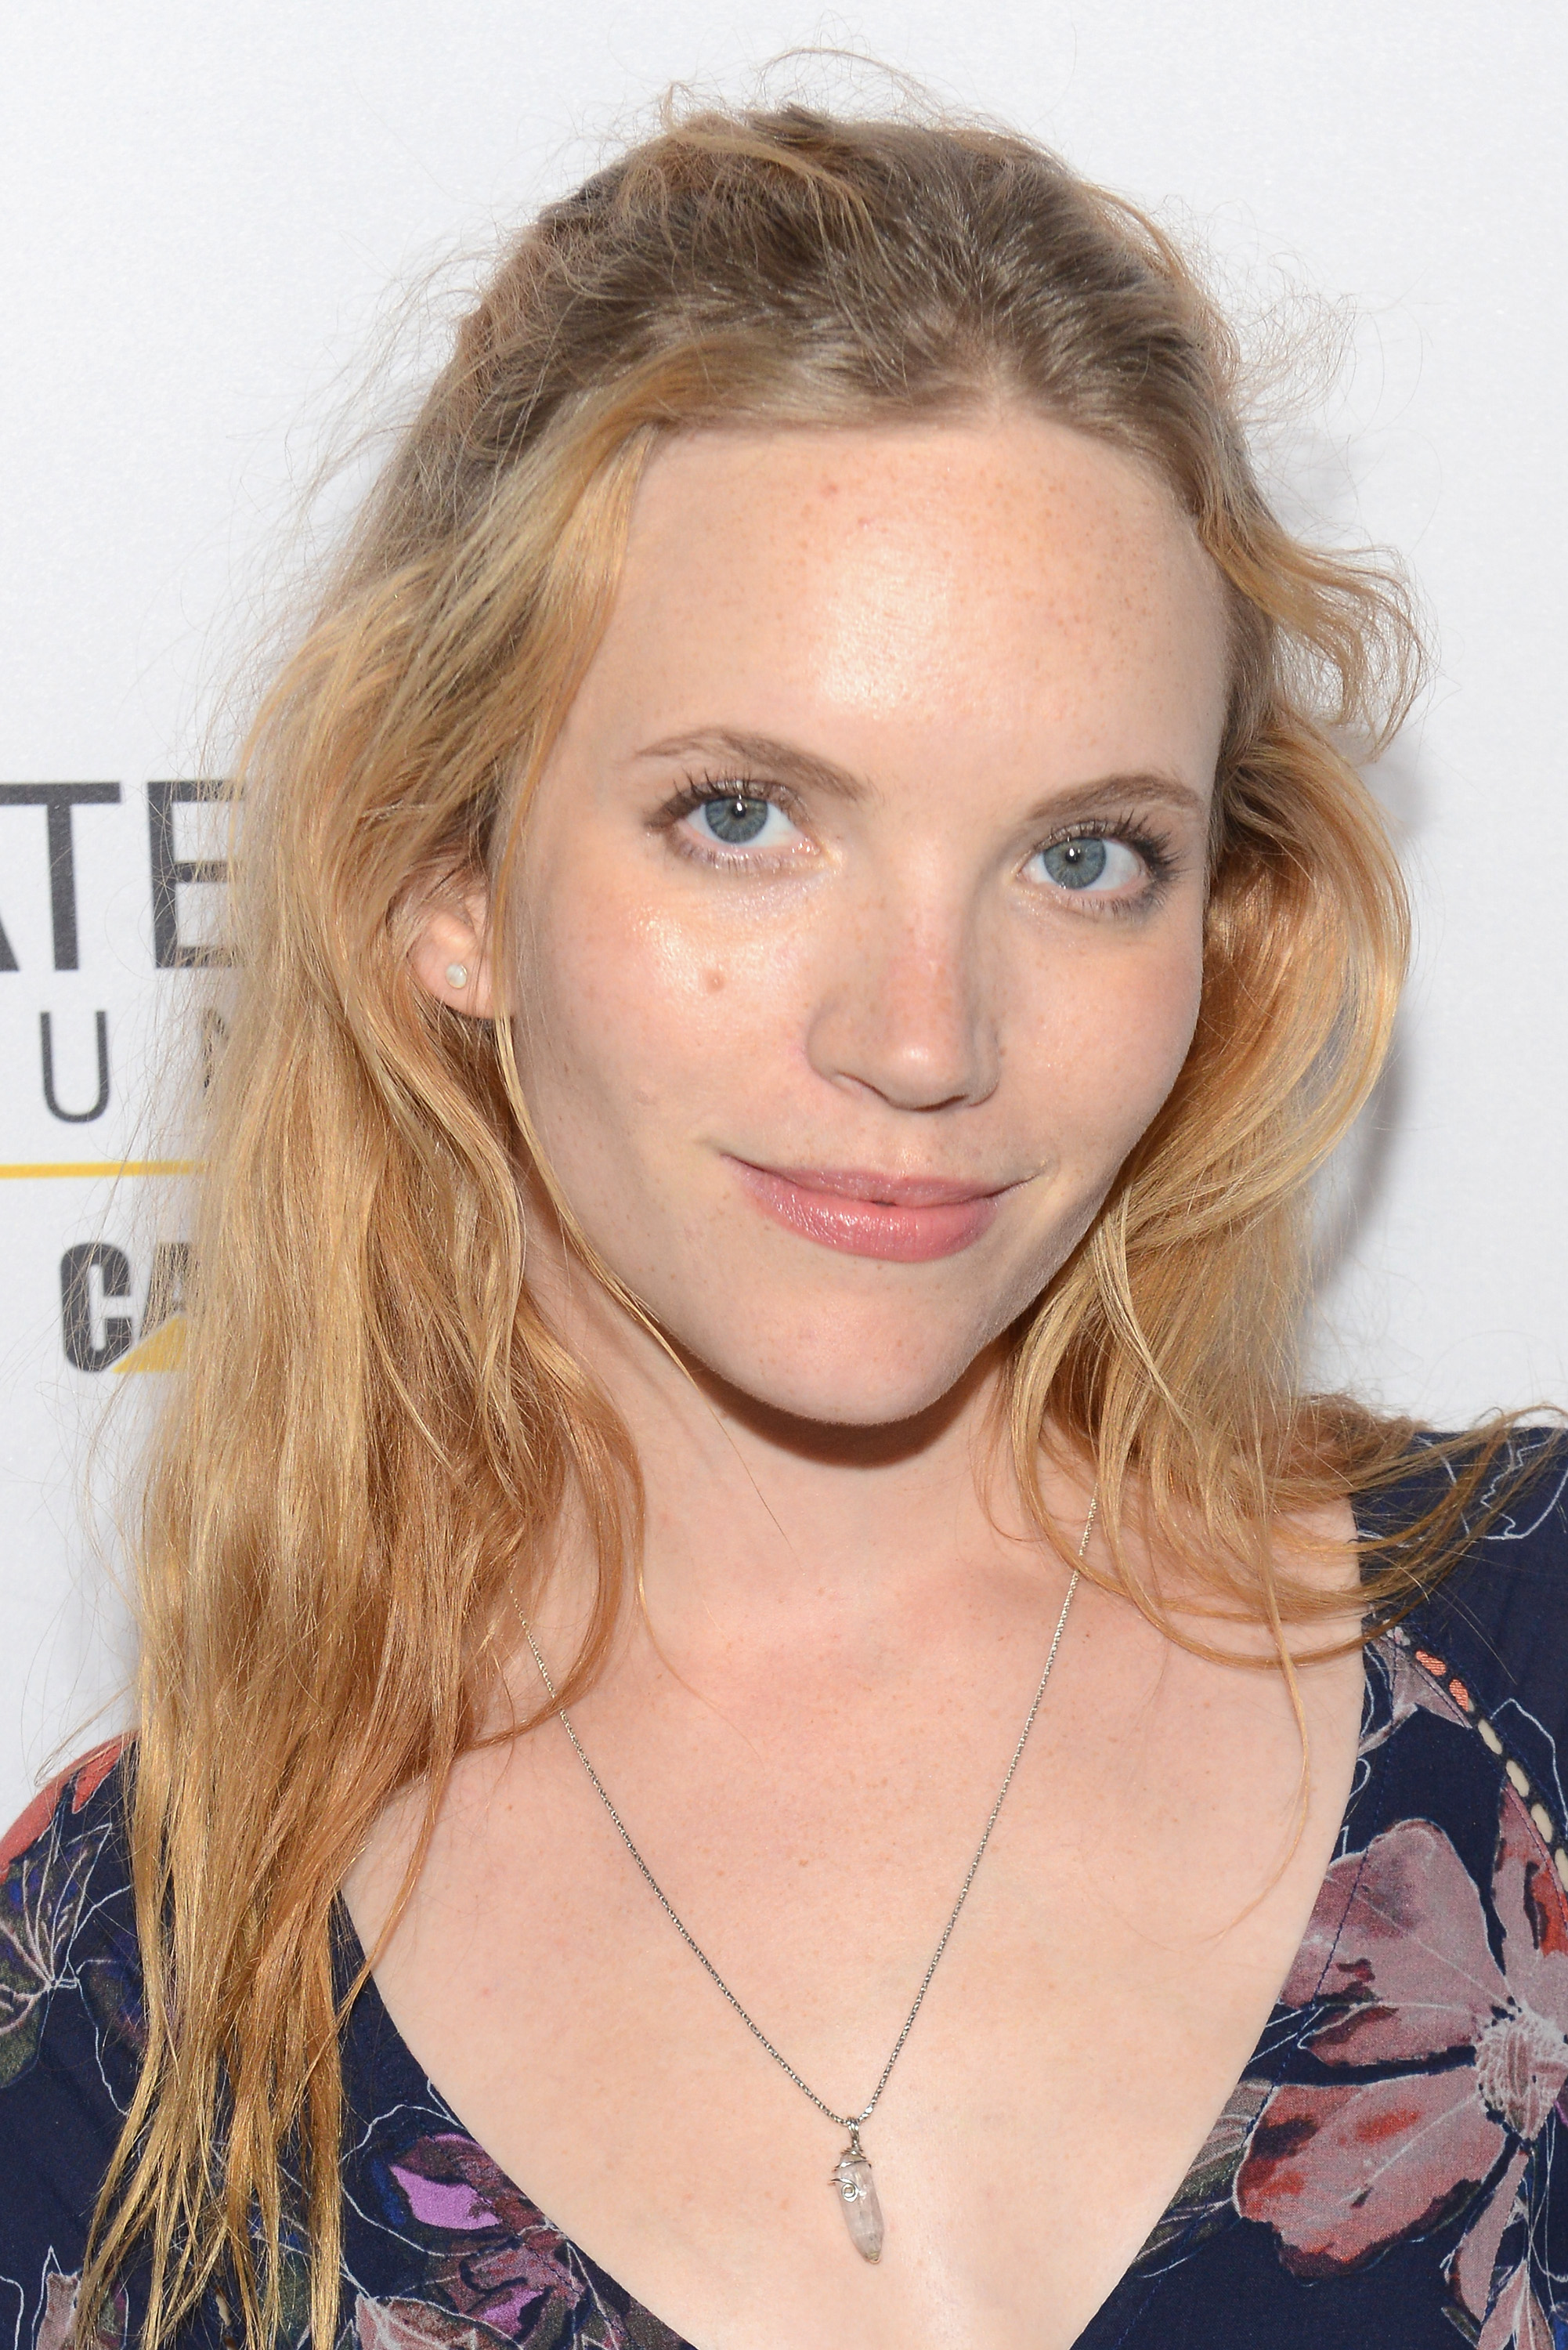 Tamzin Merchant nude (48 photo), Tits, Fappening, Instagram, cleavage 2017